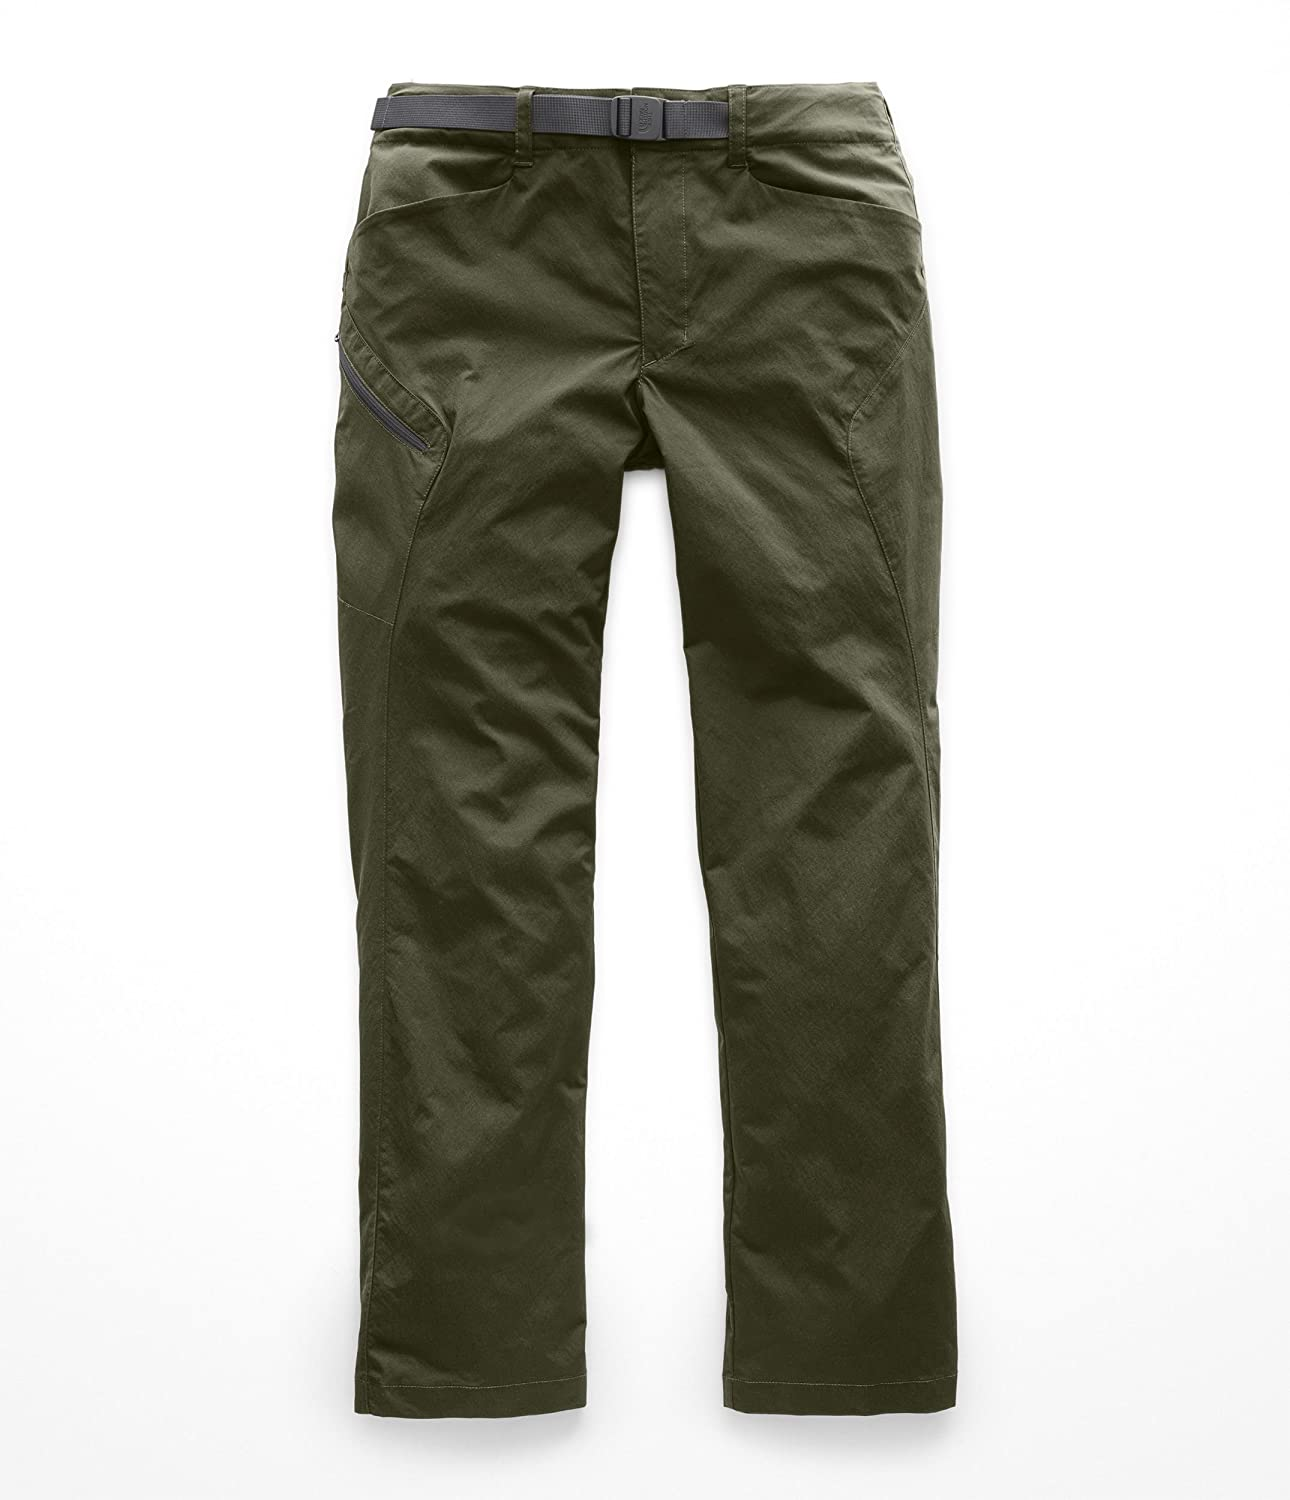 33 Regular The North Face Mens Straight Paramount 3.0 Pant New Taupe Green